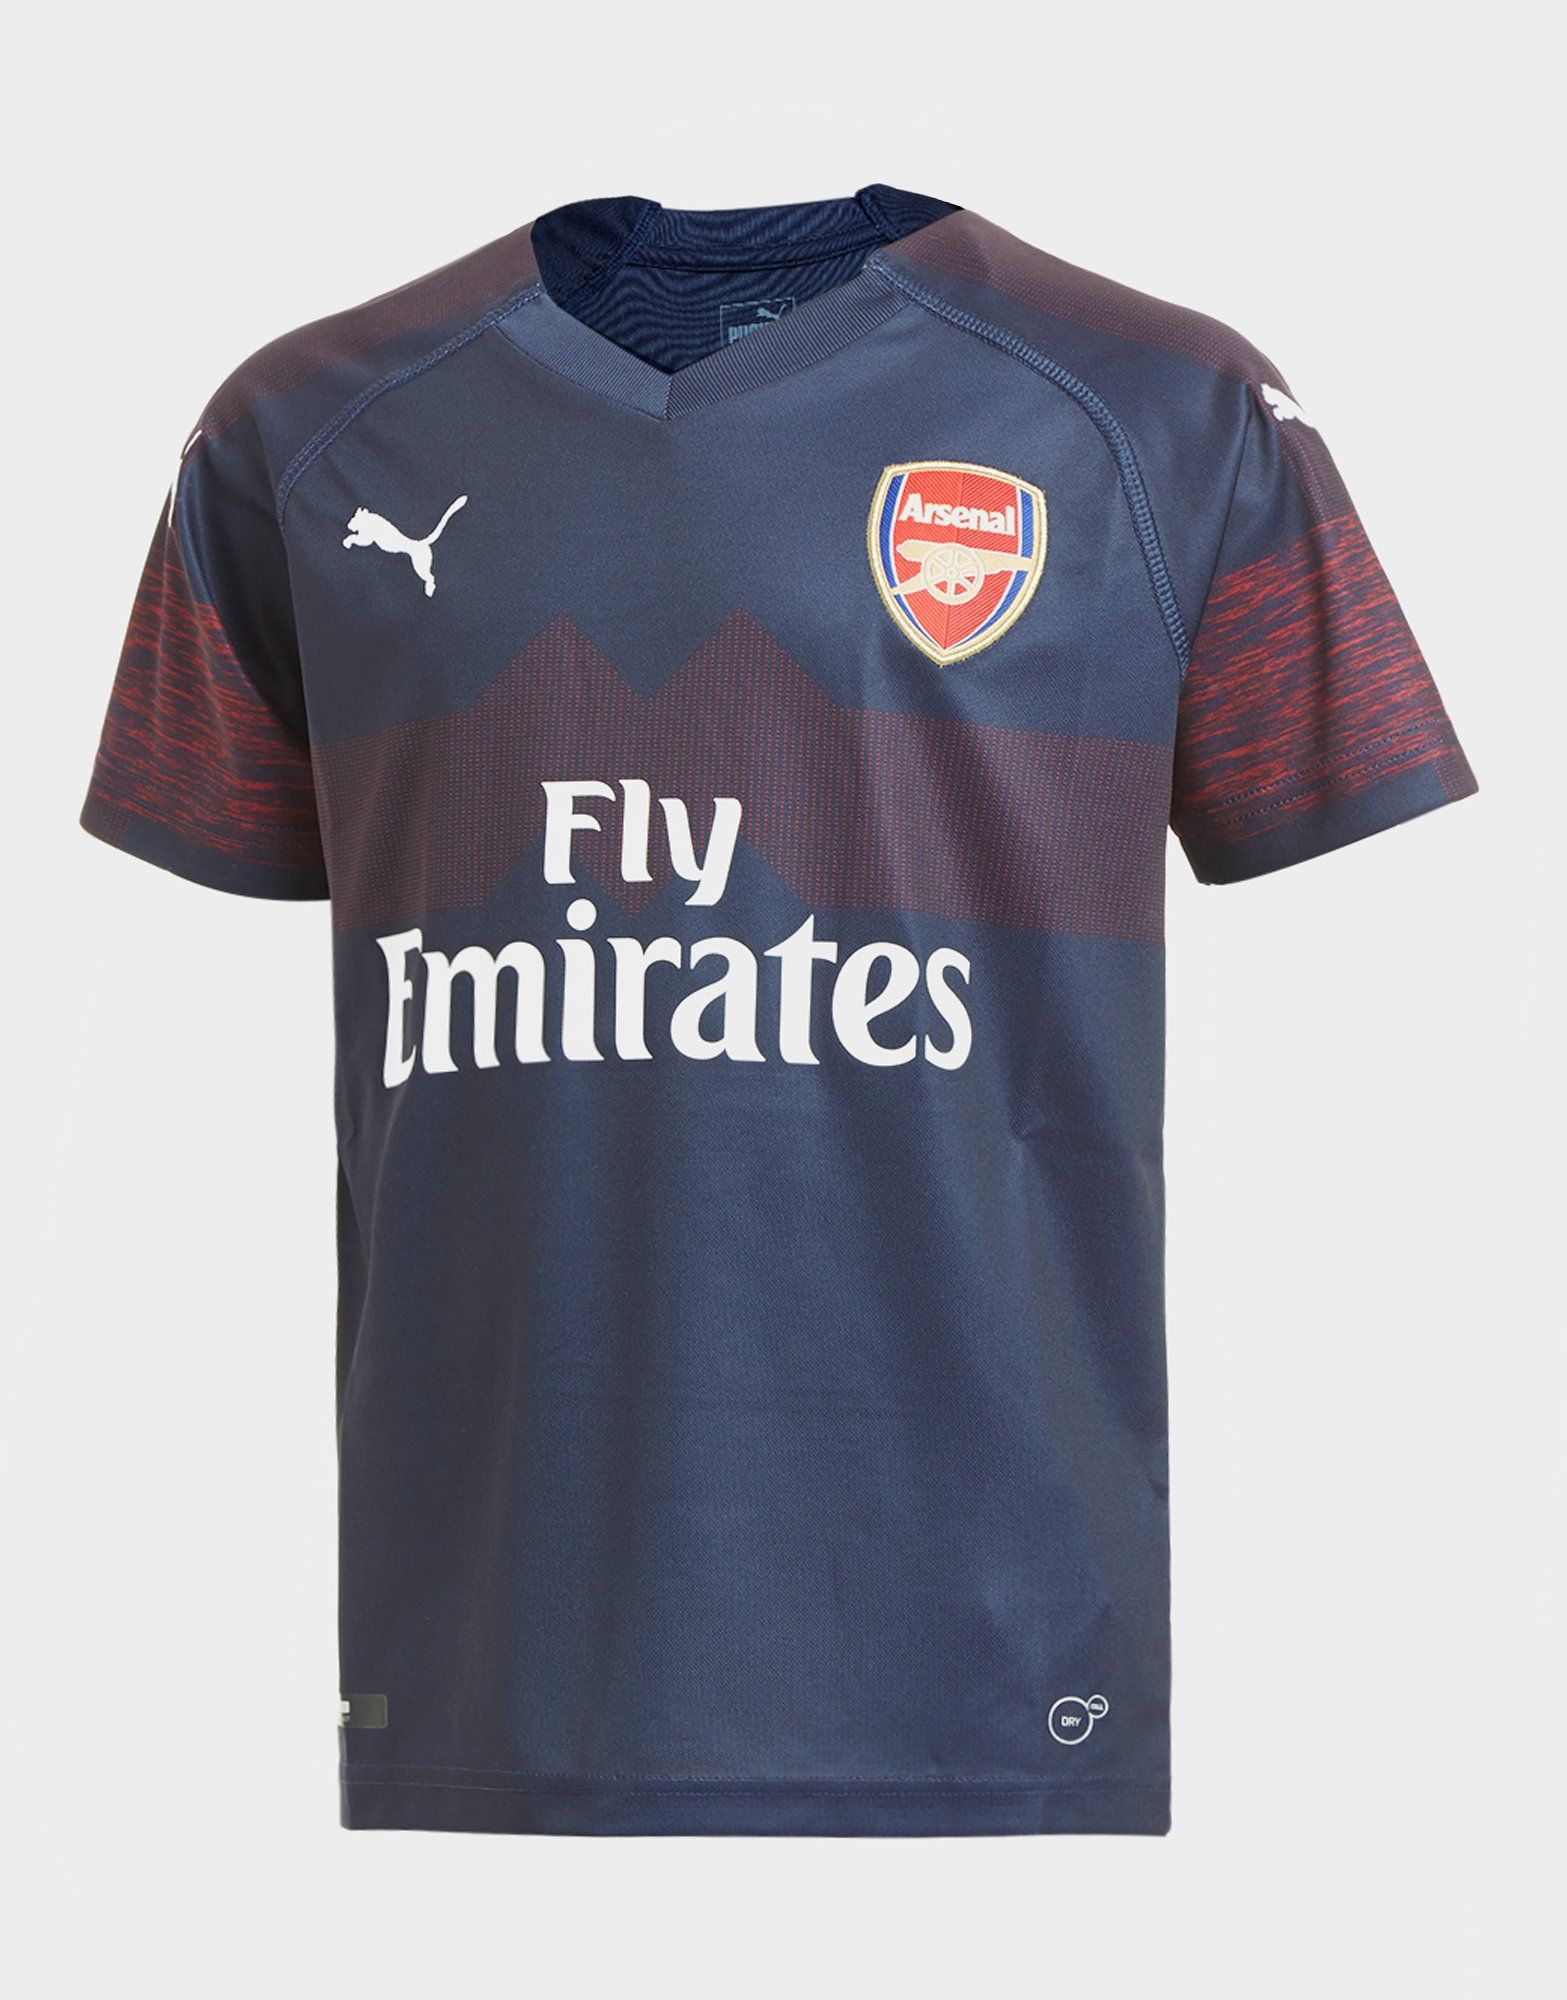 dcee20fcb76 PUMA Arsenal FC 2018 19 Away Shirt Junior